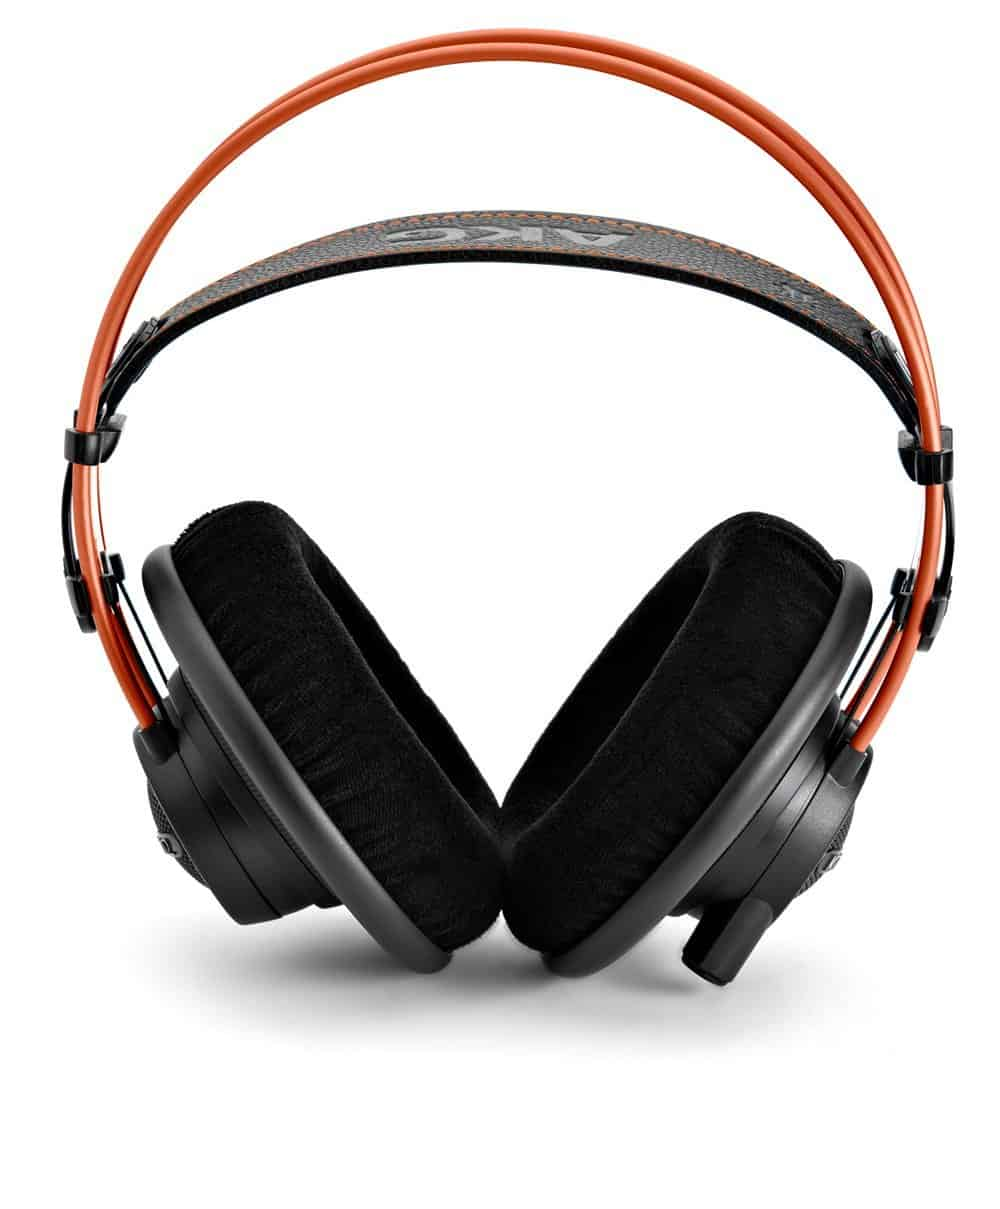 Best Headphones for dj